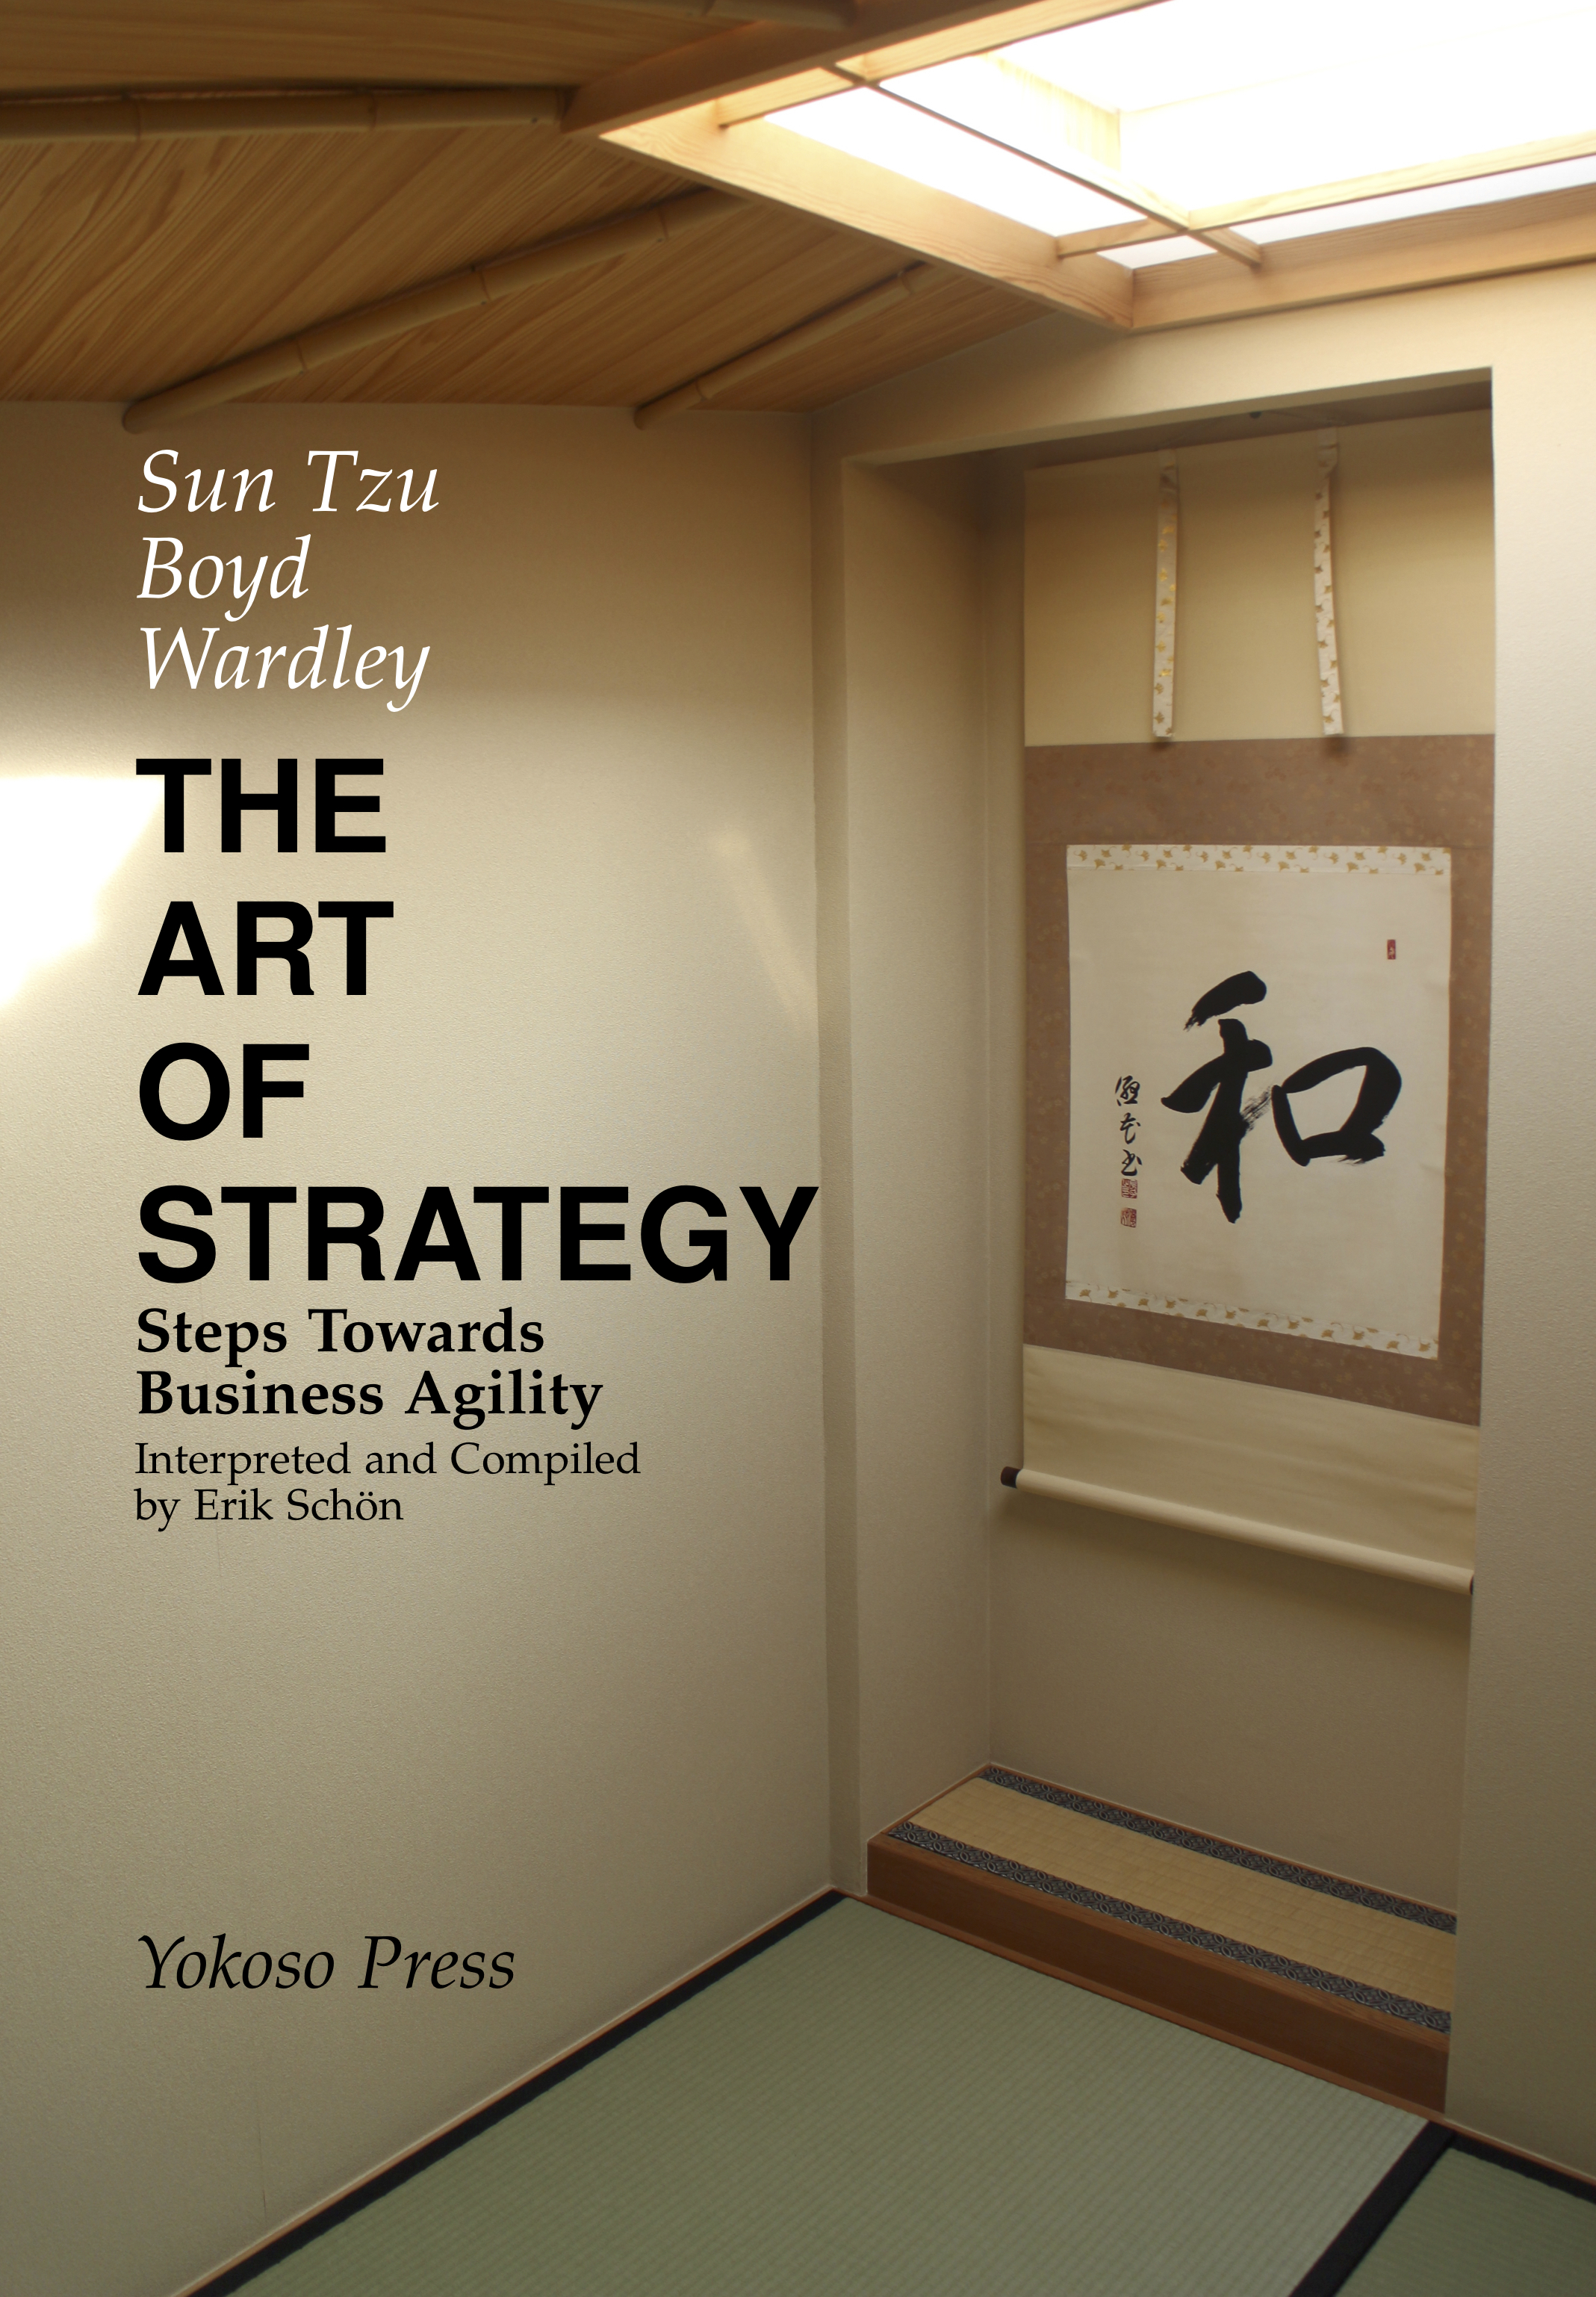 Erik Schön - The Art of Strategy